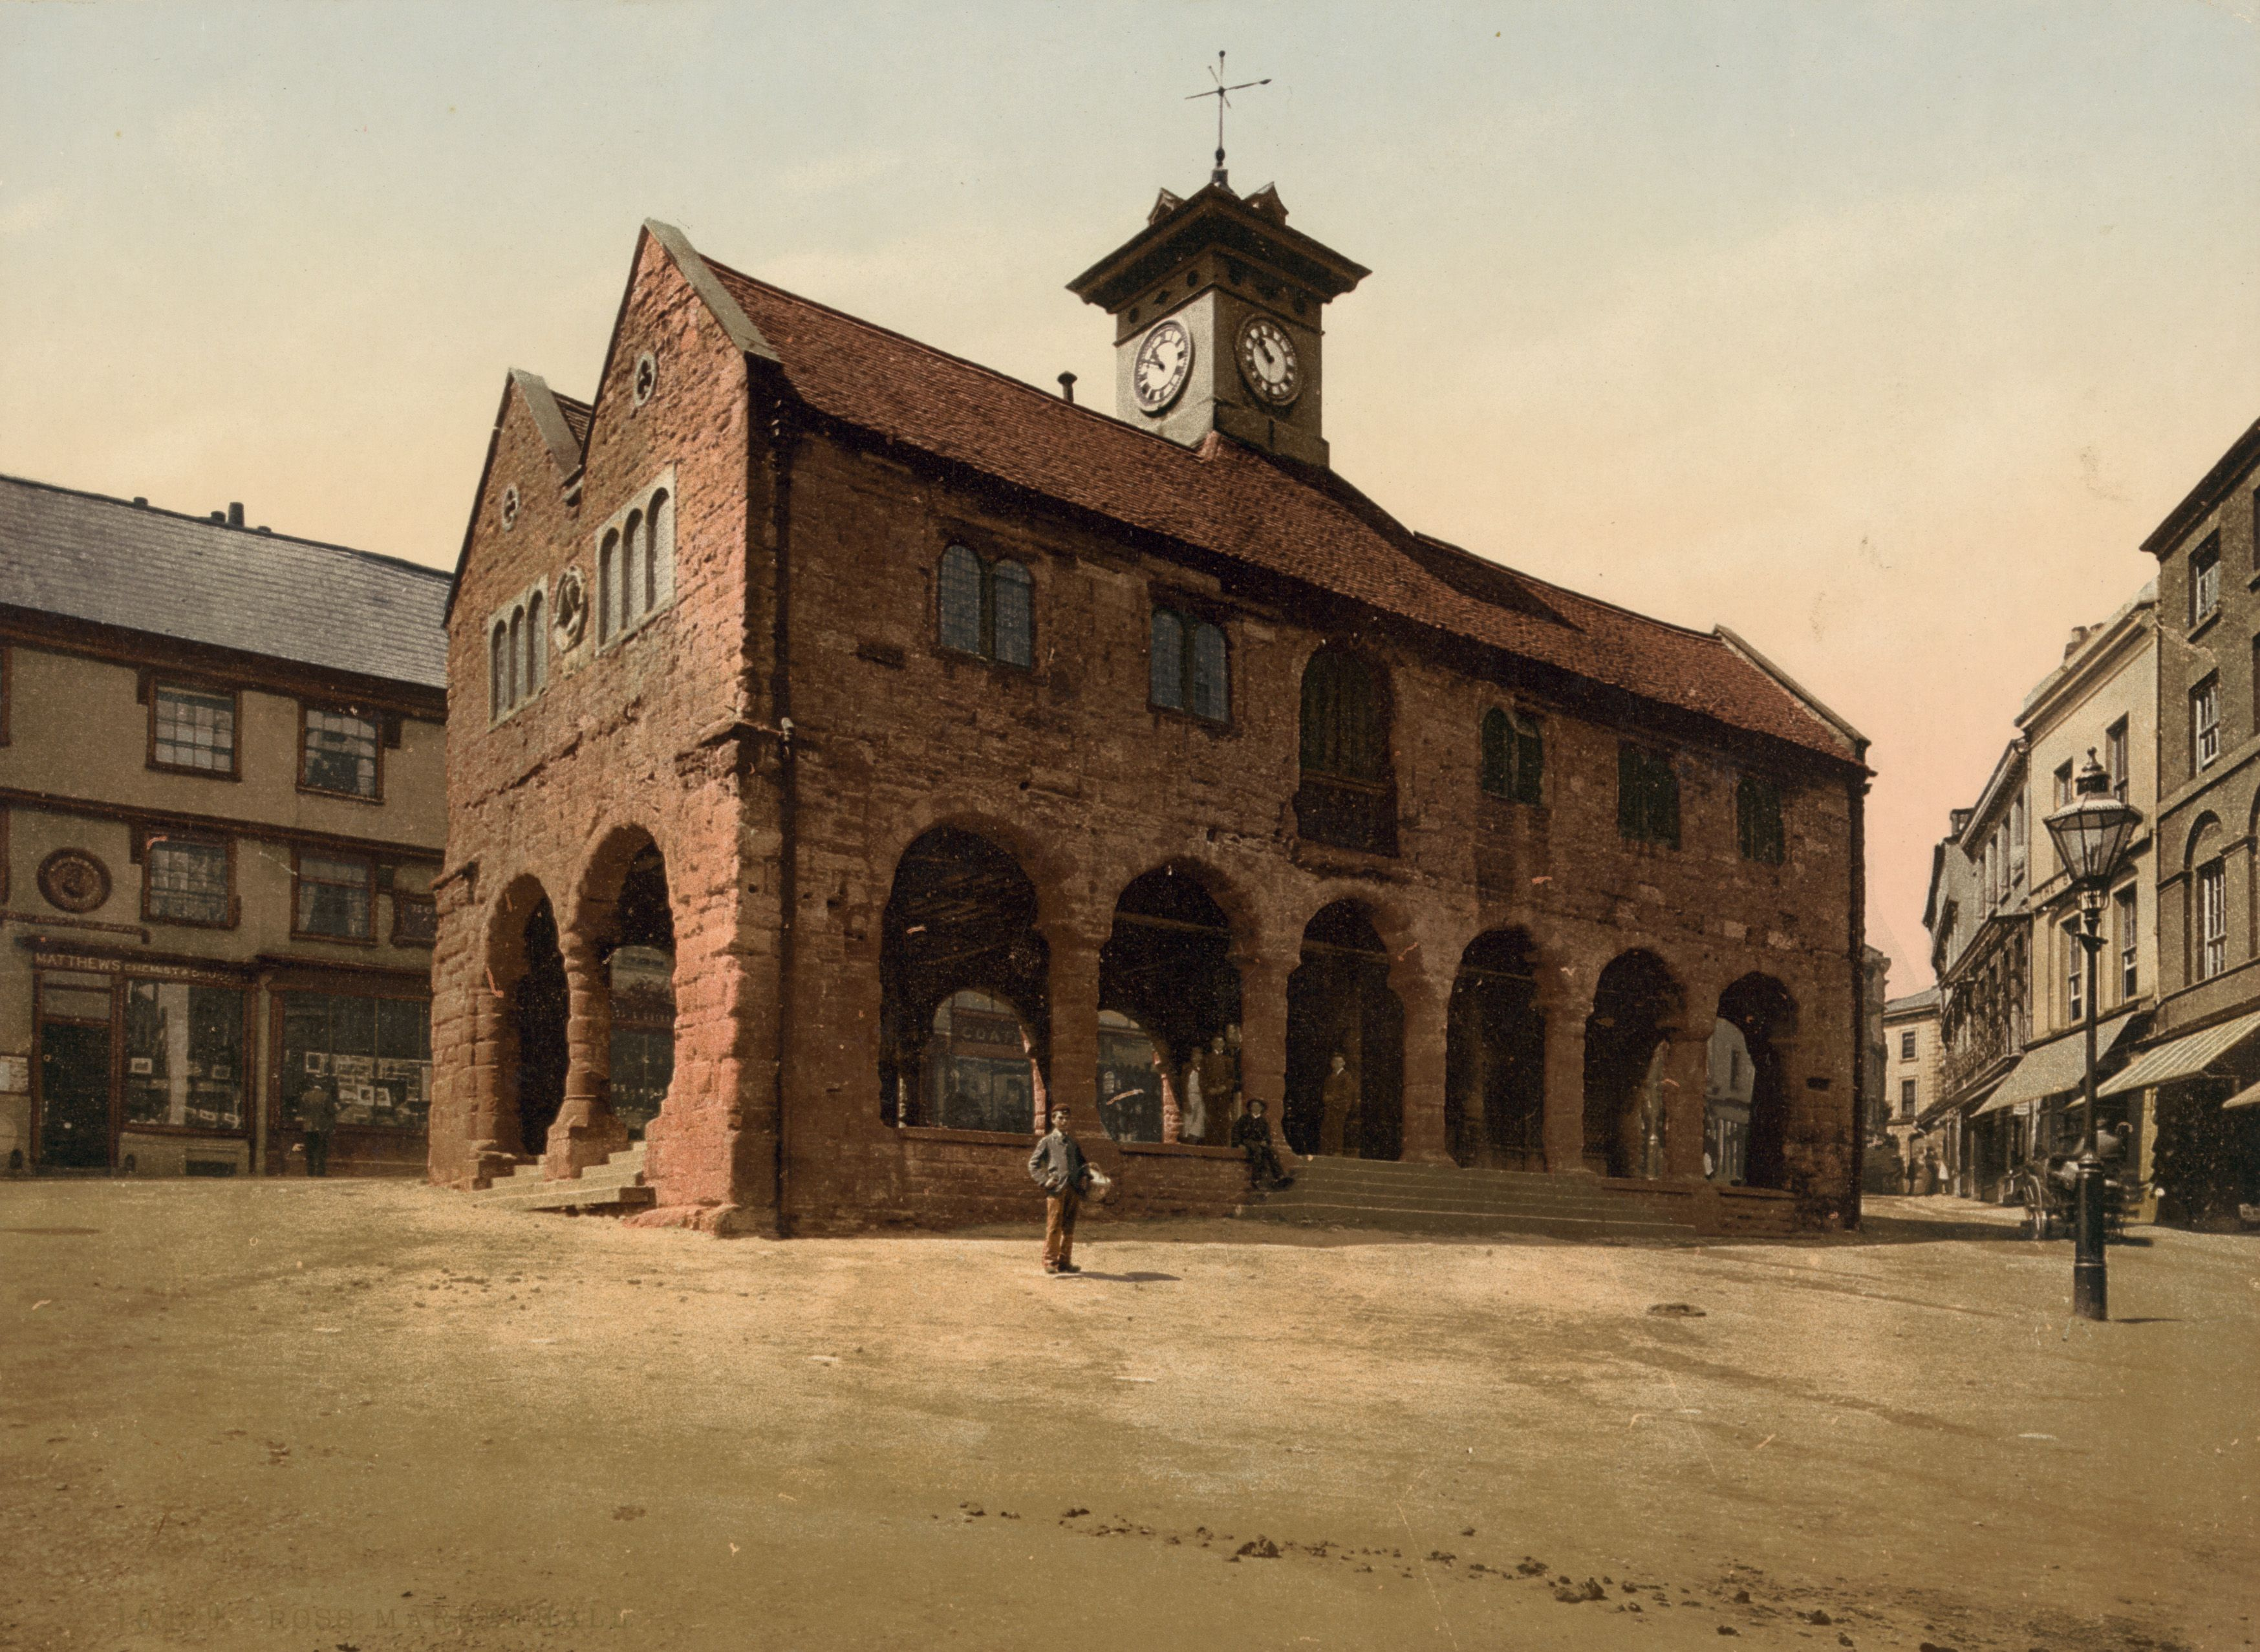 Market Hall Ross On Wye Herefordshire England Ca 1890 First Color Photograph Ross On Wye Herefordshire